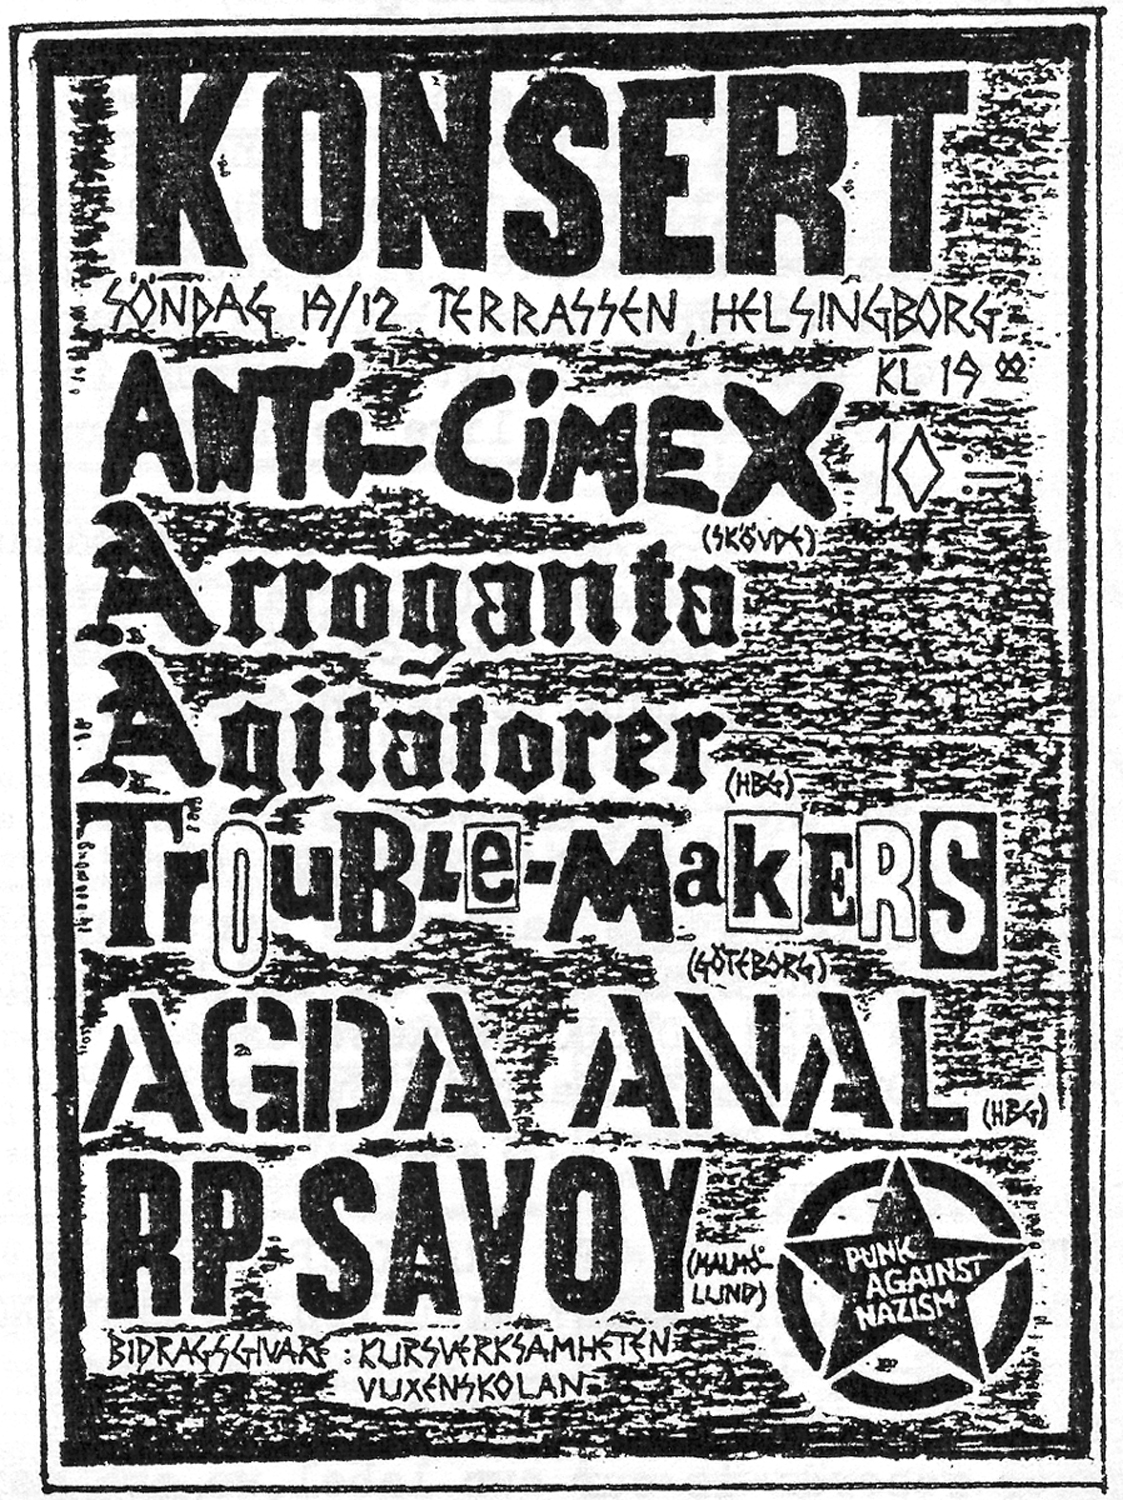 Anti-Cimex + Arroganta Agitatorer flyer